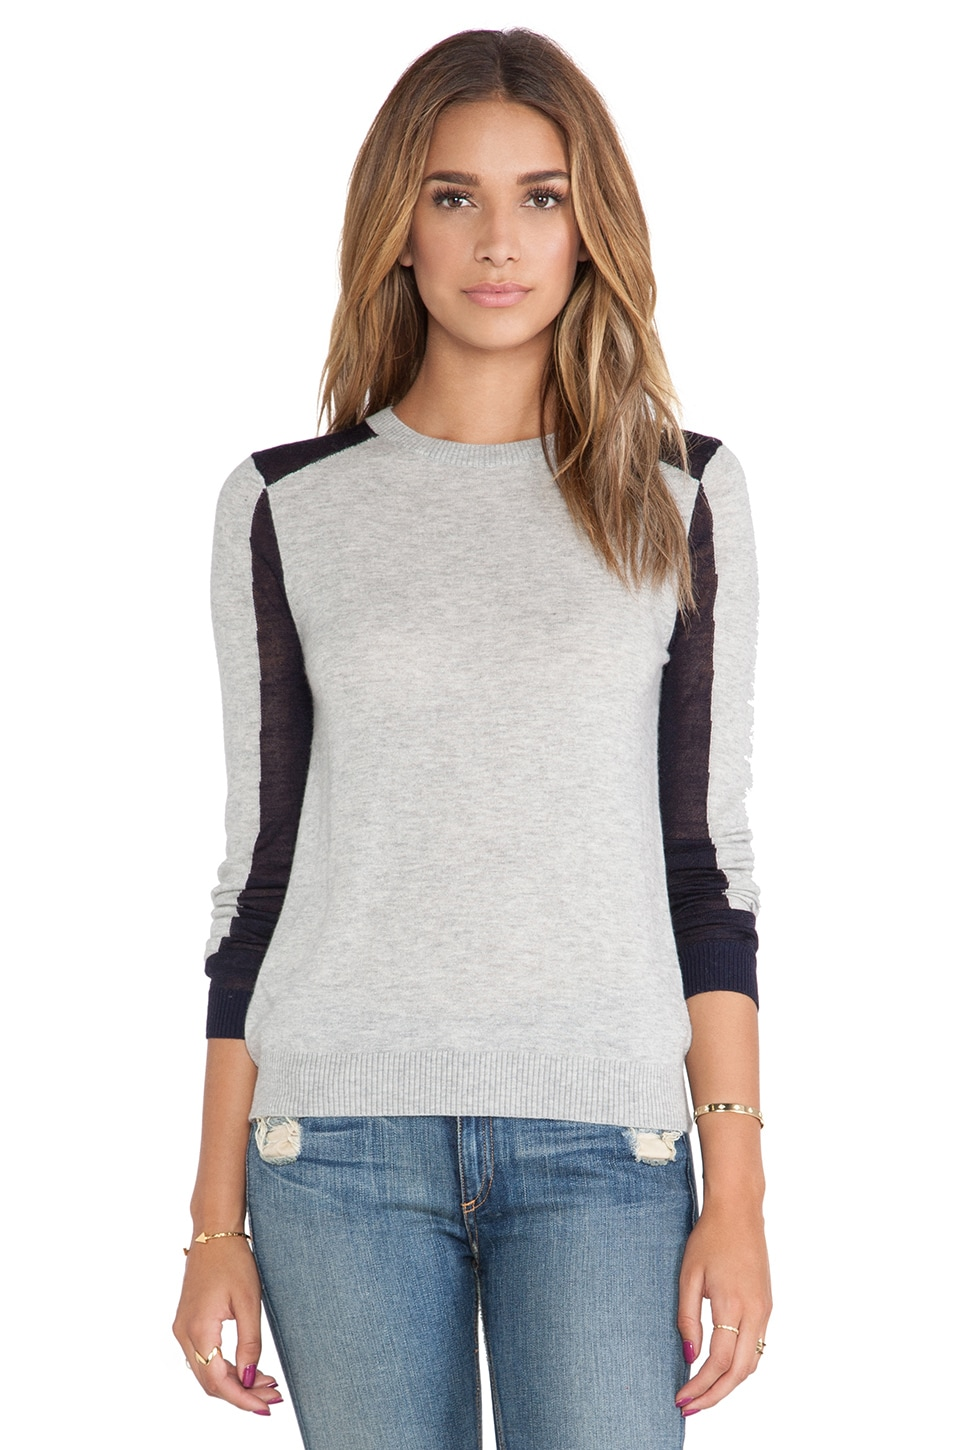 SHAE Blocked Pullover in Heather Grey Combo